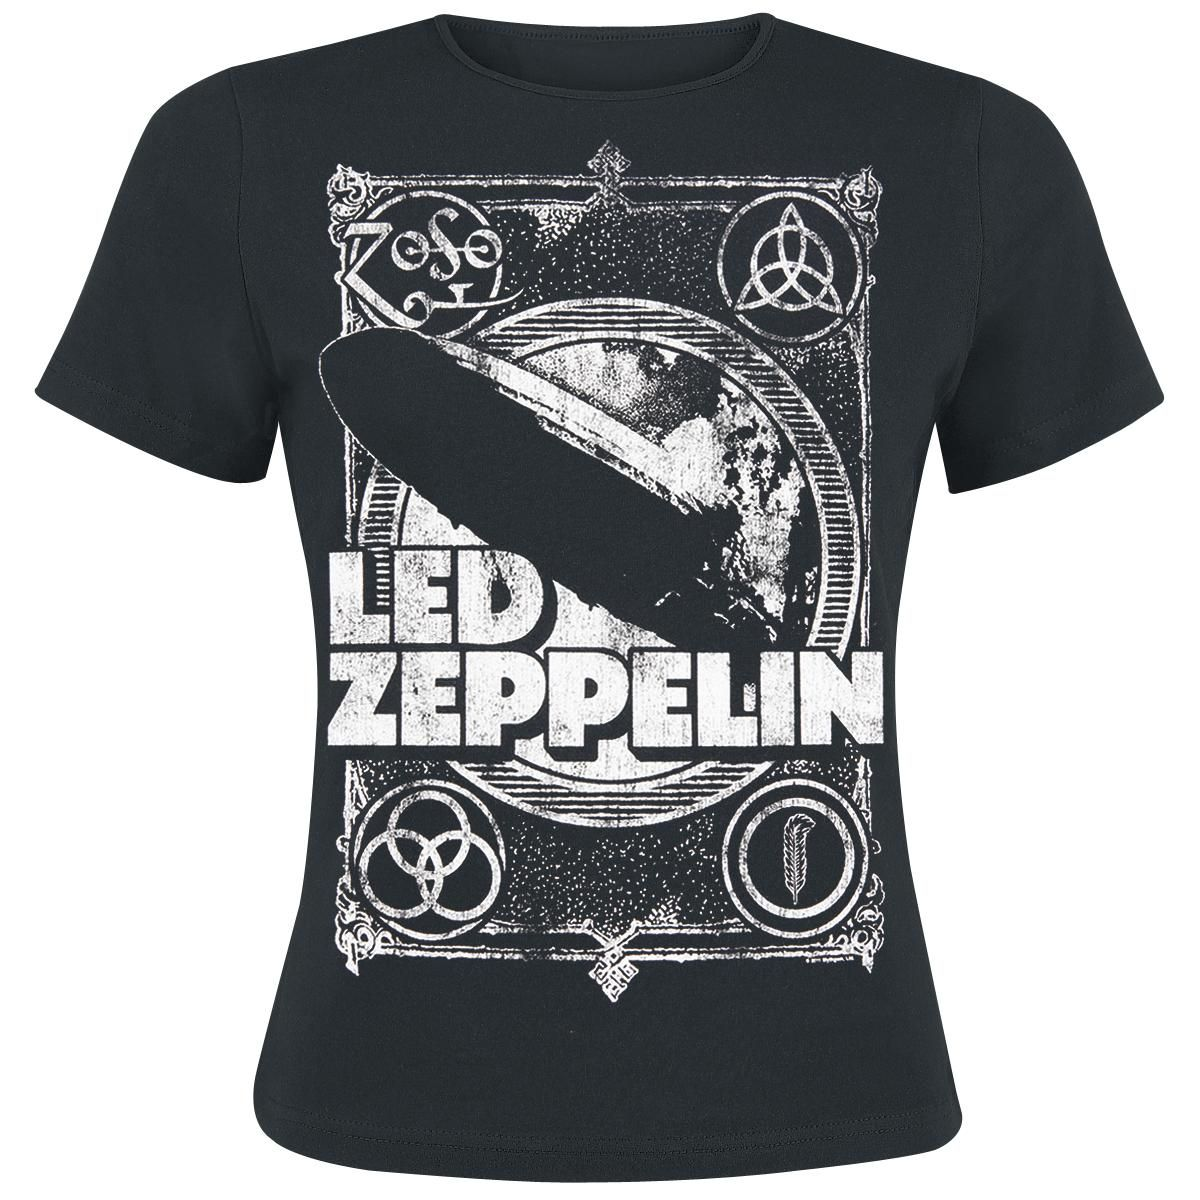 t shirts camisetas led zeppelin en emp europe s. Black Bedroom Furniture Sets. Home Design Ideas